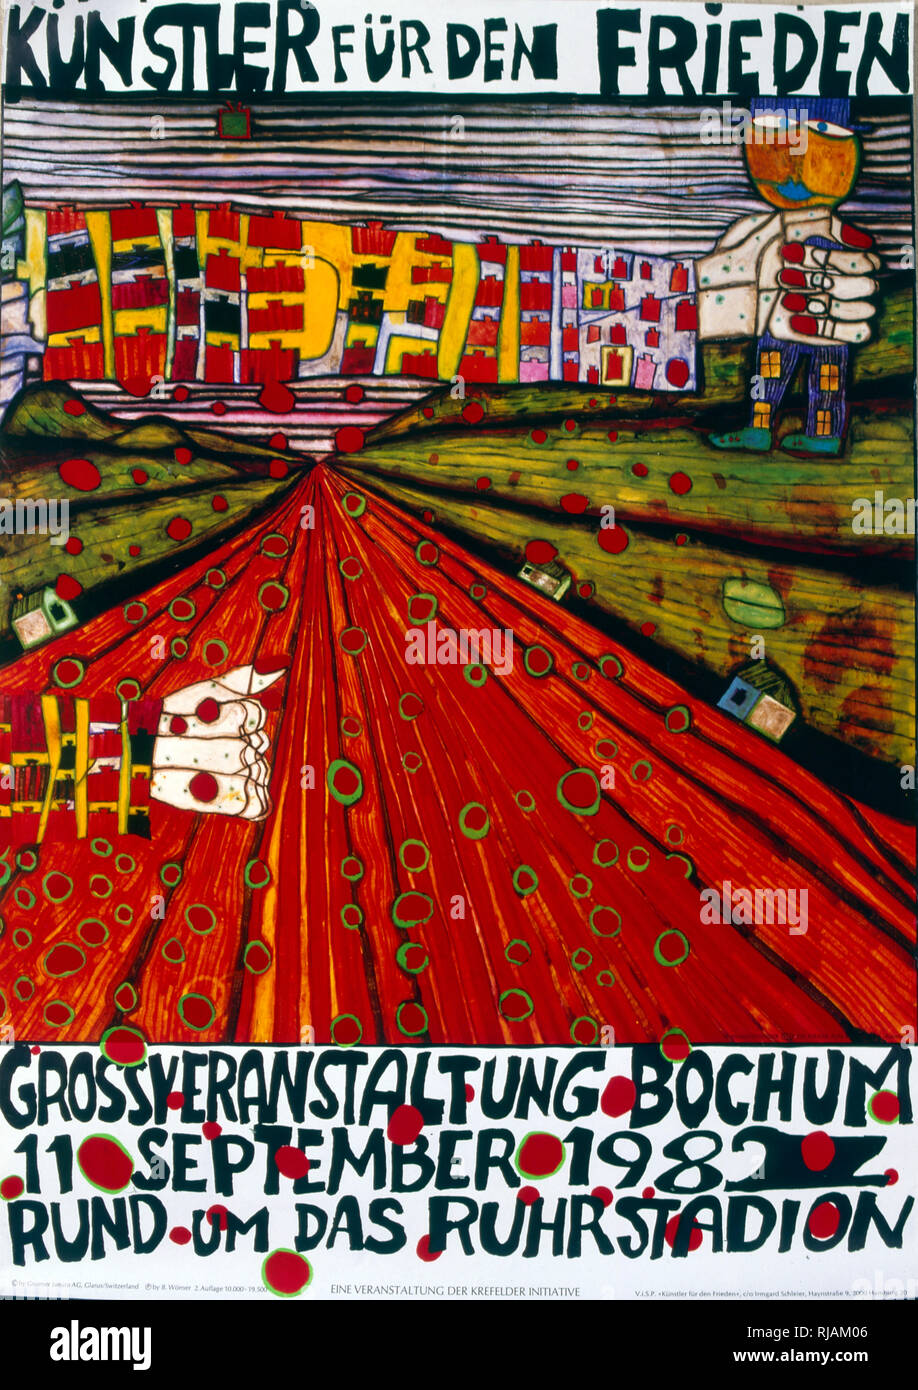 kunstler fur den frieden', stand up for peace. anti-nuclear war, poster 1982. On the occasion of a demonstration and benefit concert in the stadium in Bochum, September 11, 1982, against stationing Pershing-2 and Cruise Missiles in Central Europe. The poster was accompanied by a second one designed by Hundertwasser, listing all the names of participating artists and bands - Stock Image